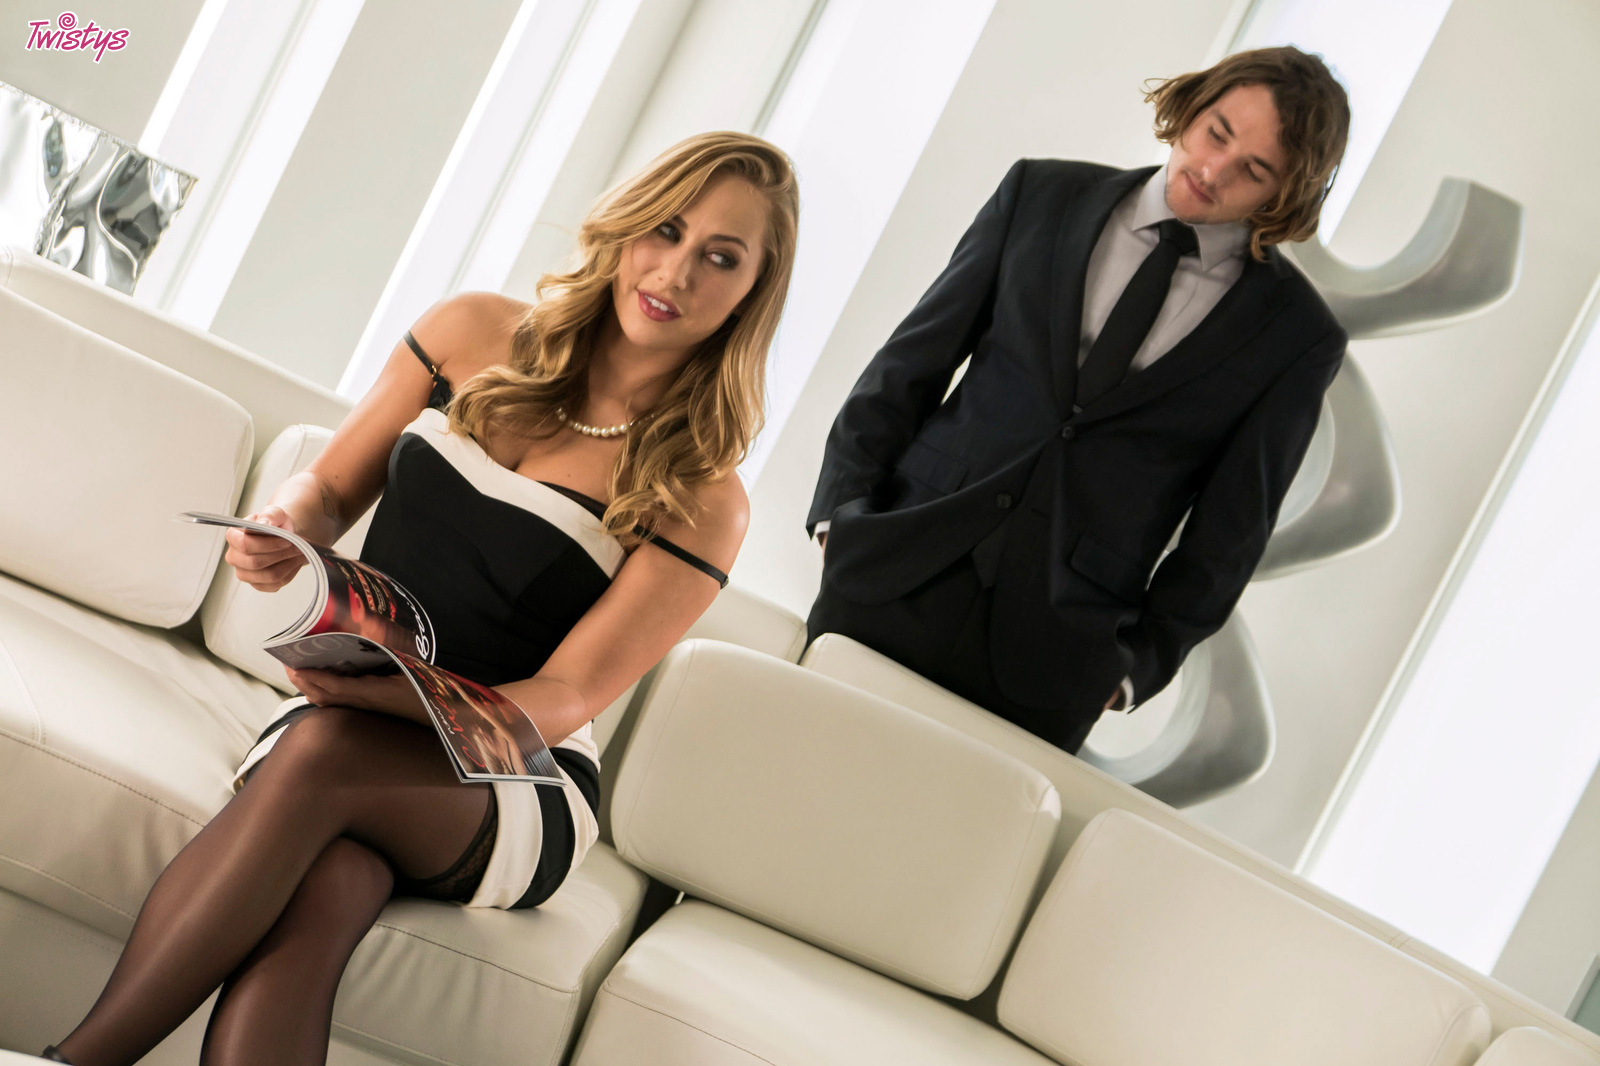 Sexy Blondie And Her Lover.. featuring Carter Cruise   Twistys.com